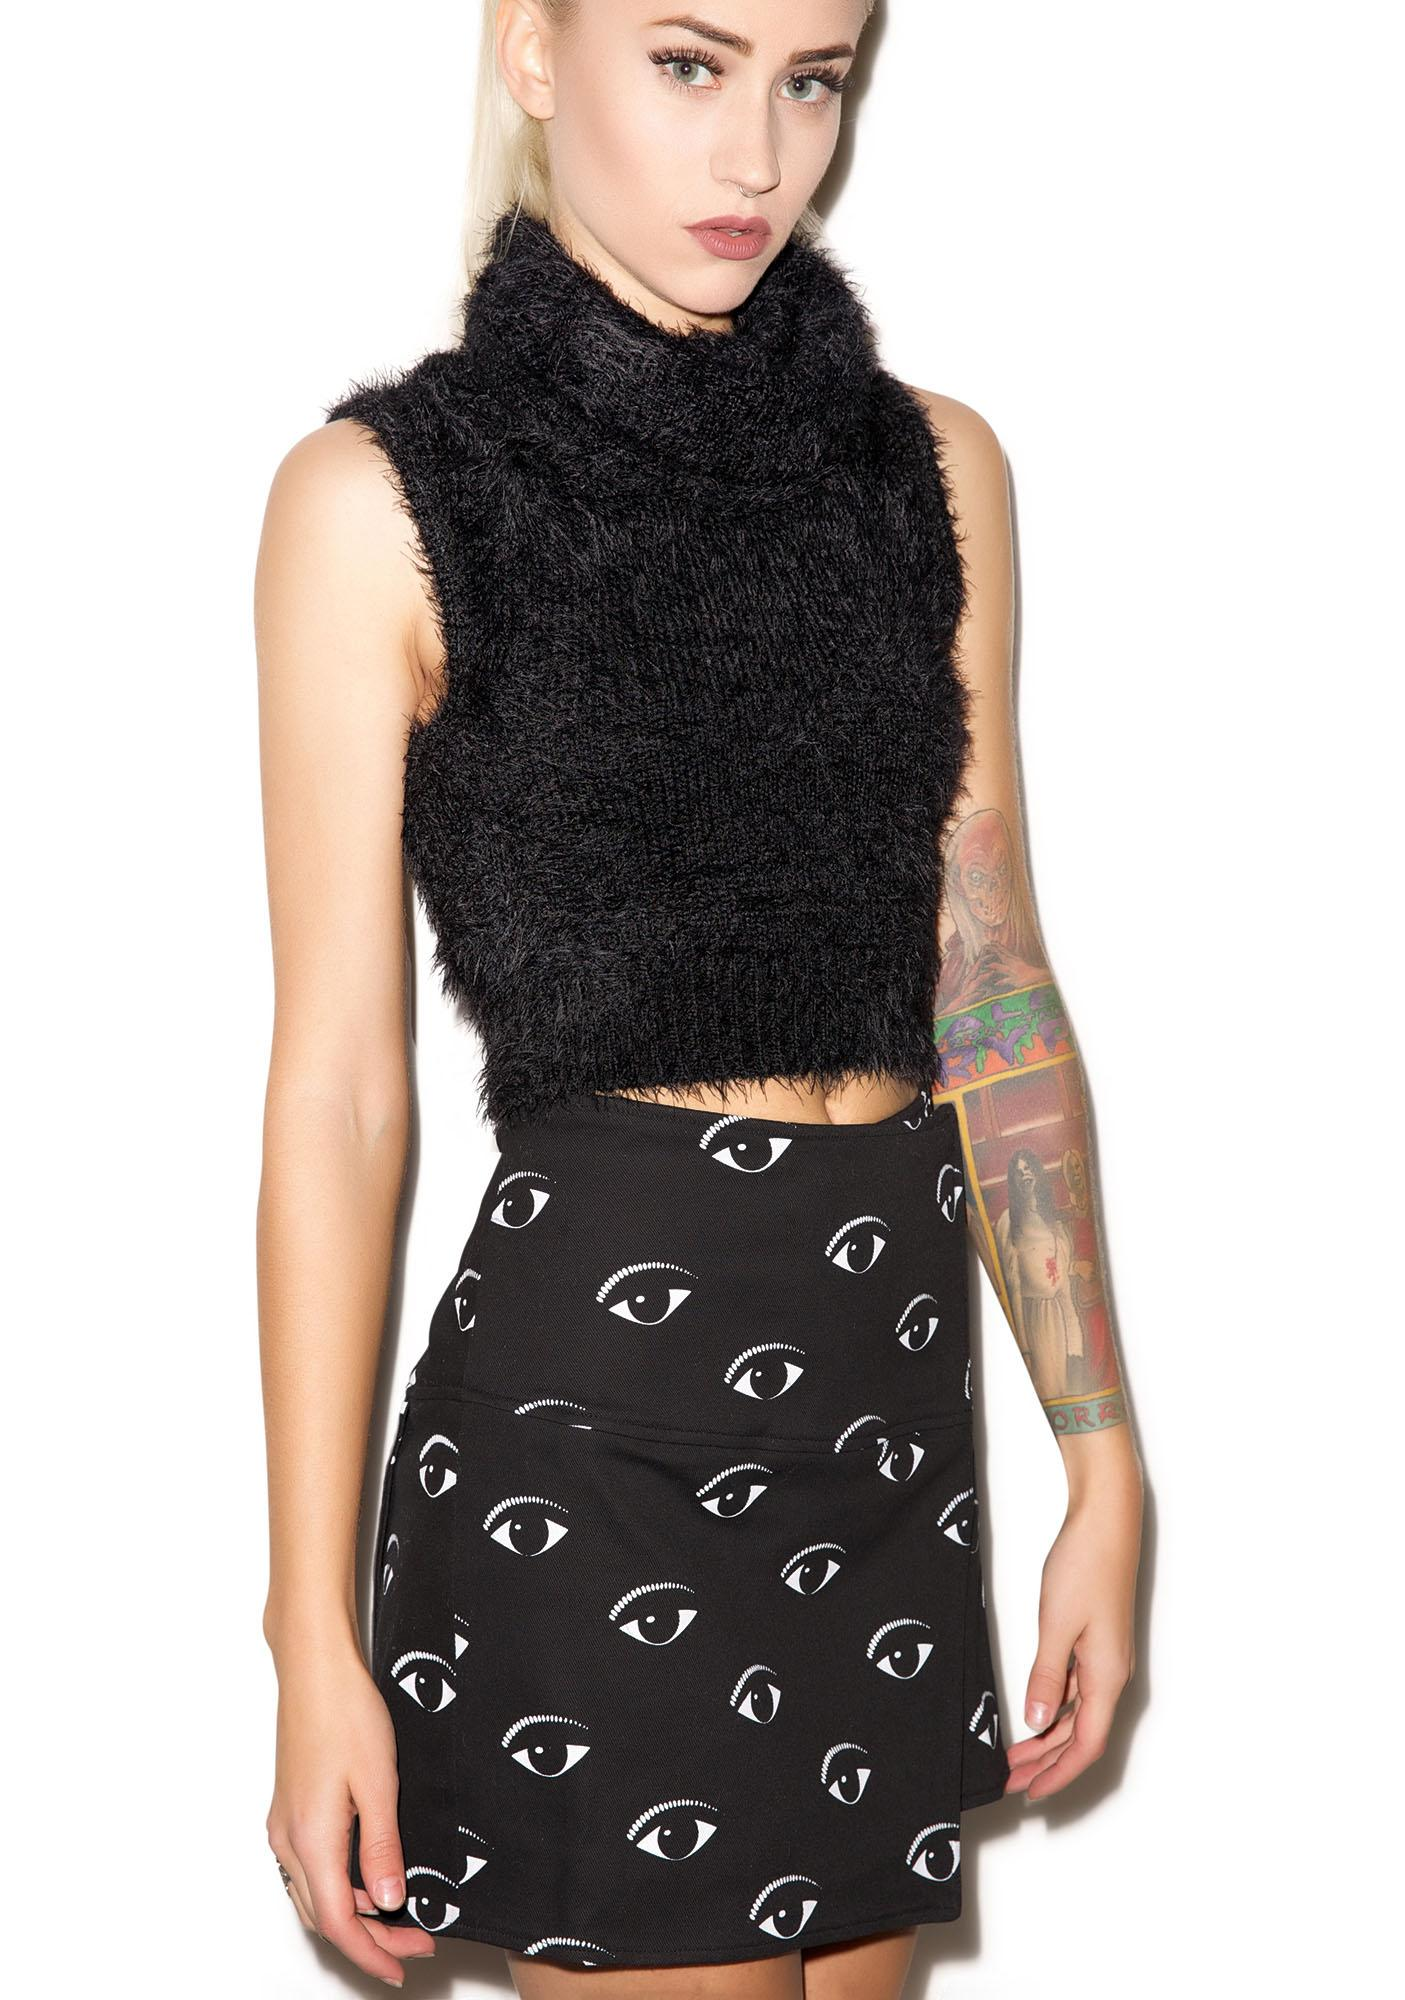 Tiger Mist Third Eye Wrap Skirt